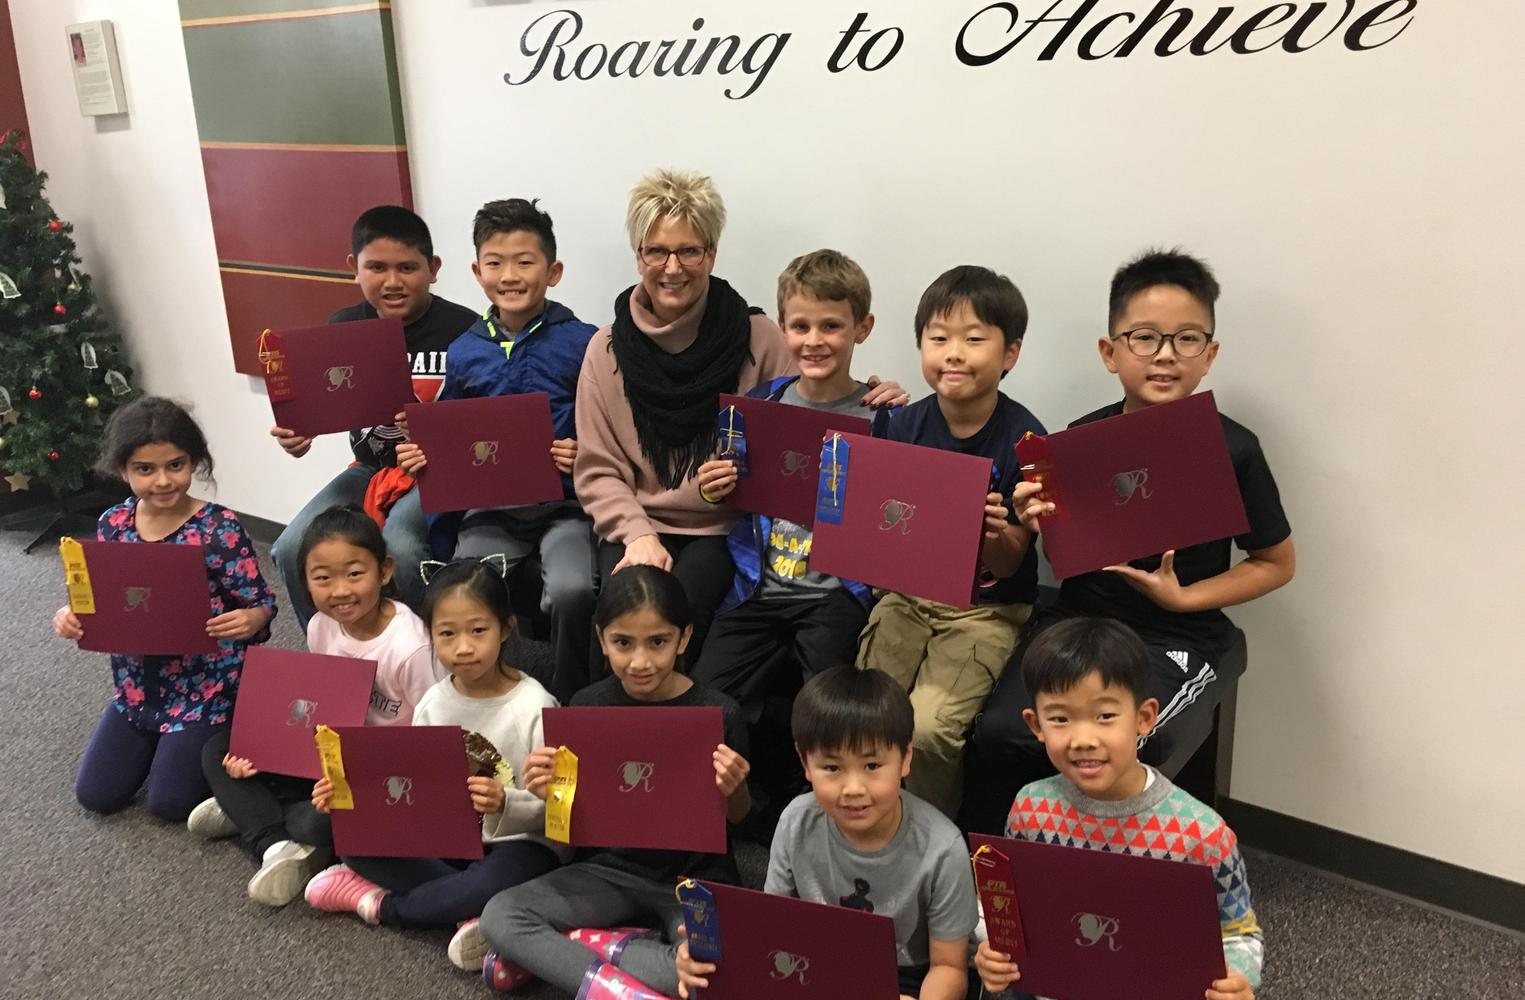 PTA's annual Reflections Art Winners for 2018